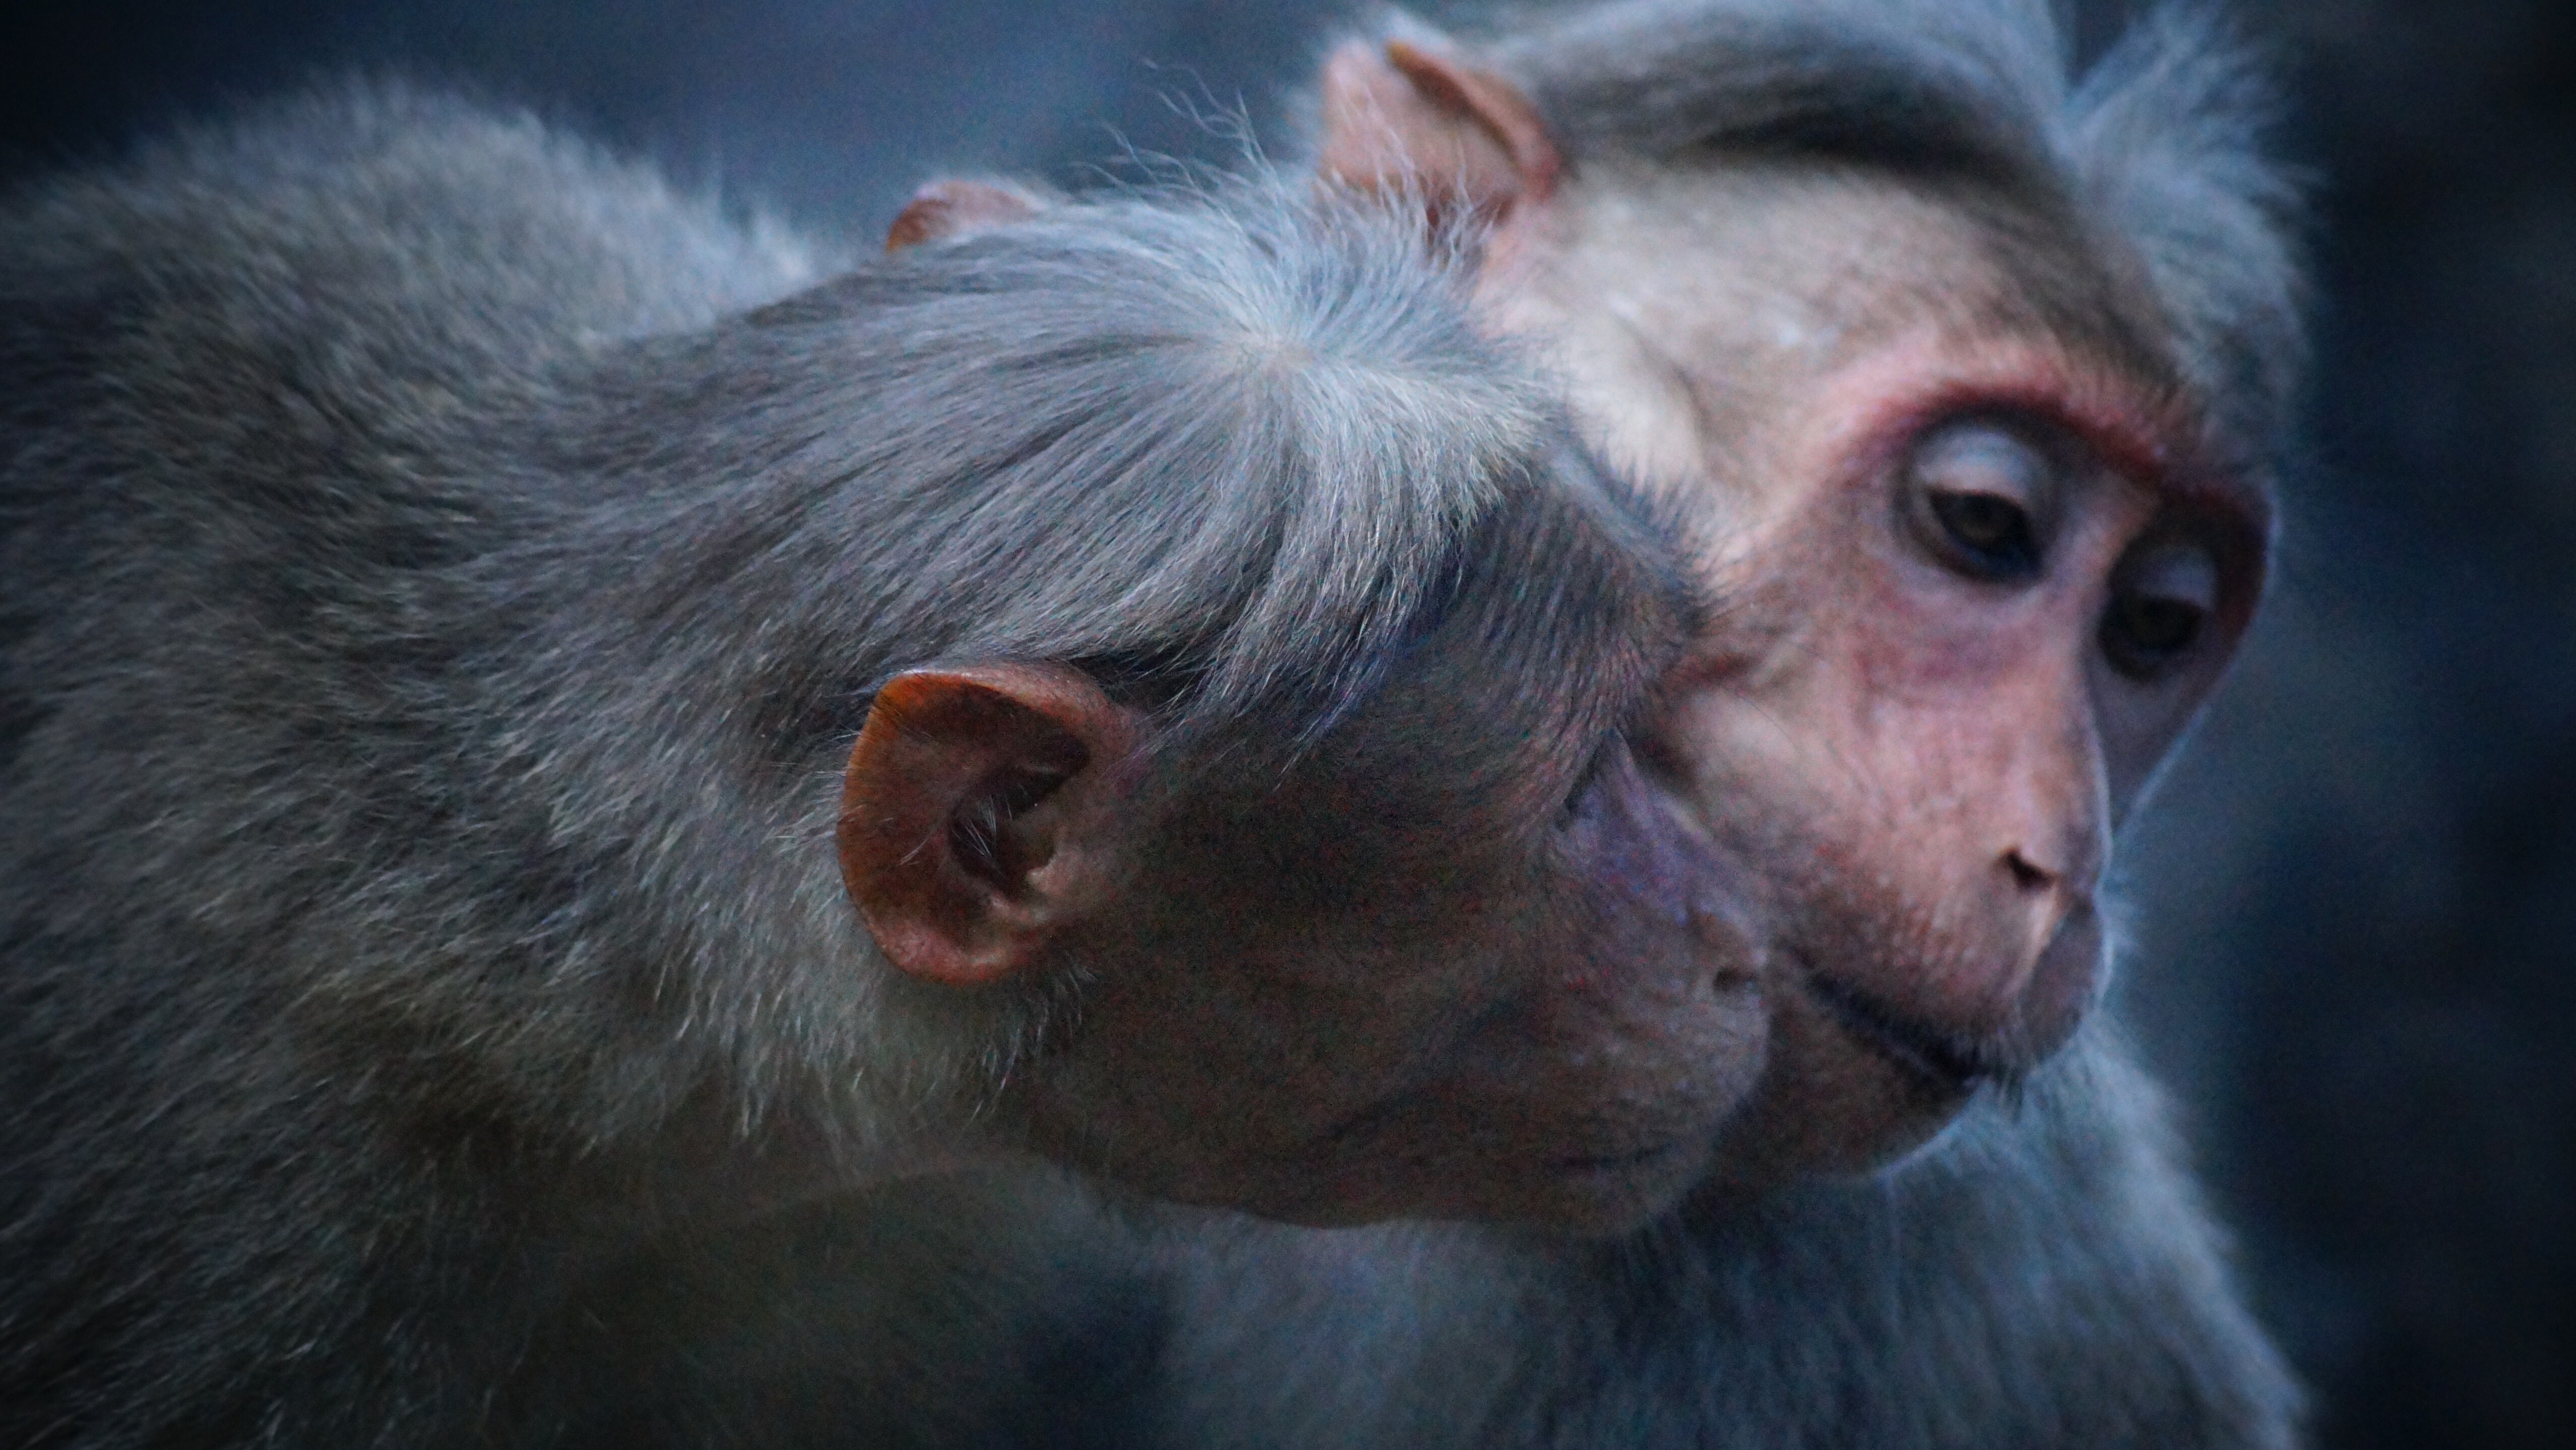 Two Monkeys Doing Love Together 5K Wallpaper | HD Wallpapers